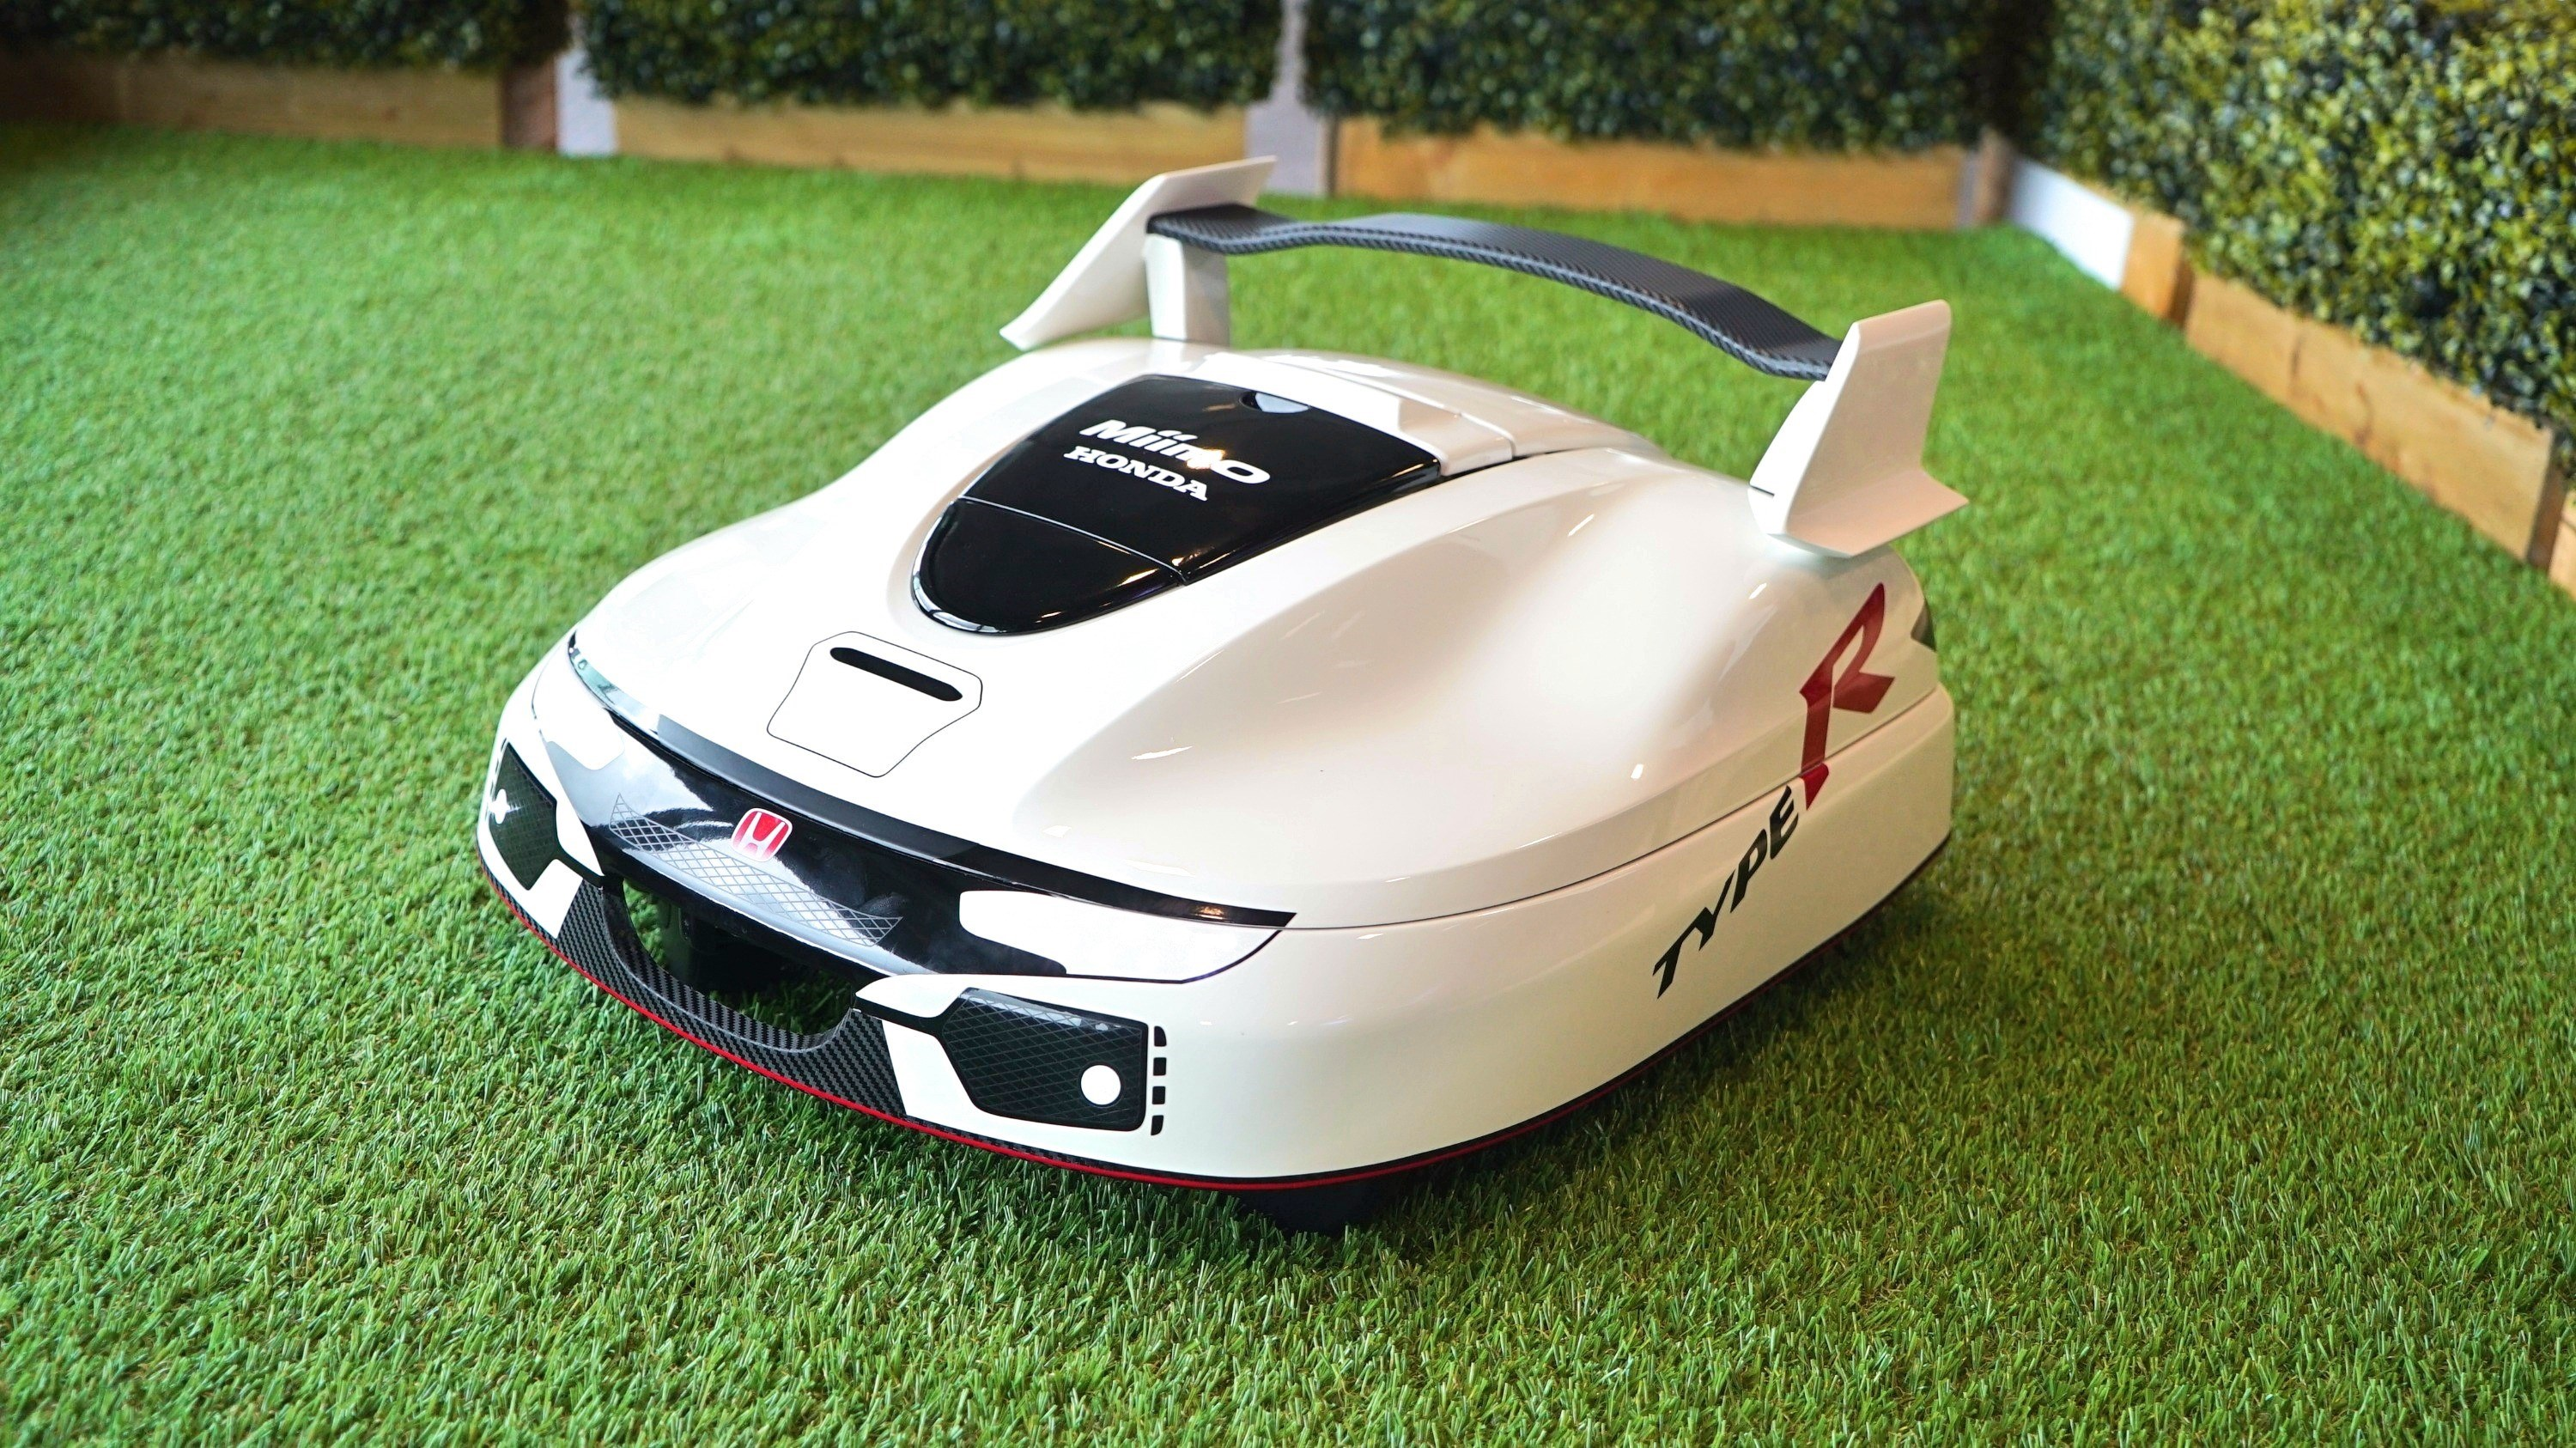 Honda Creates Civic Type R-Inspired Lawn Mower, Lets The